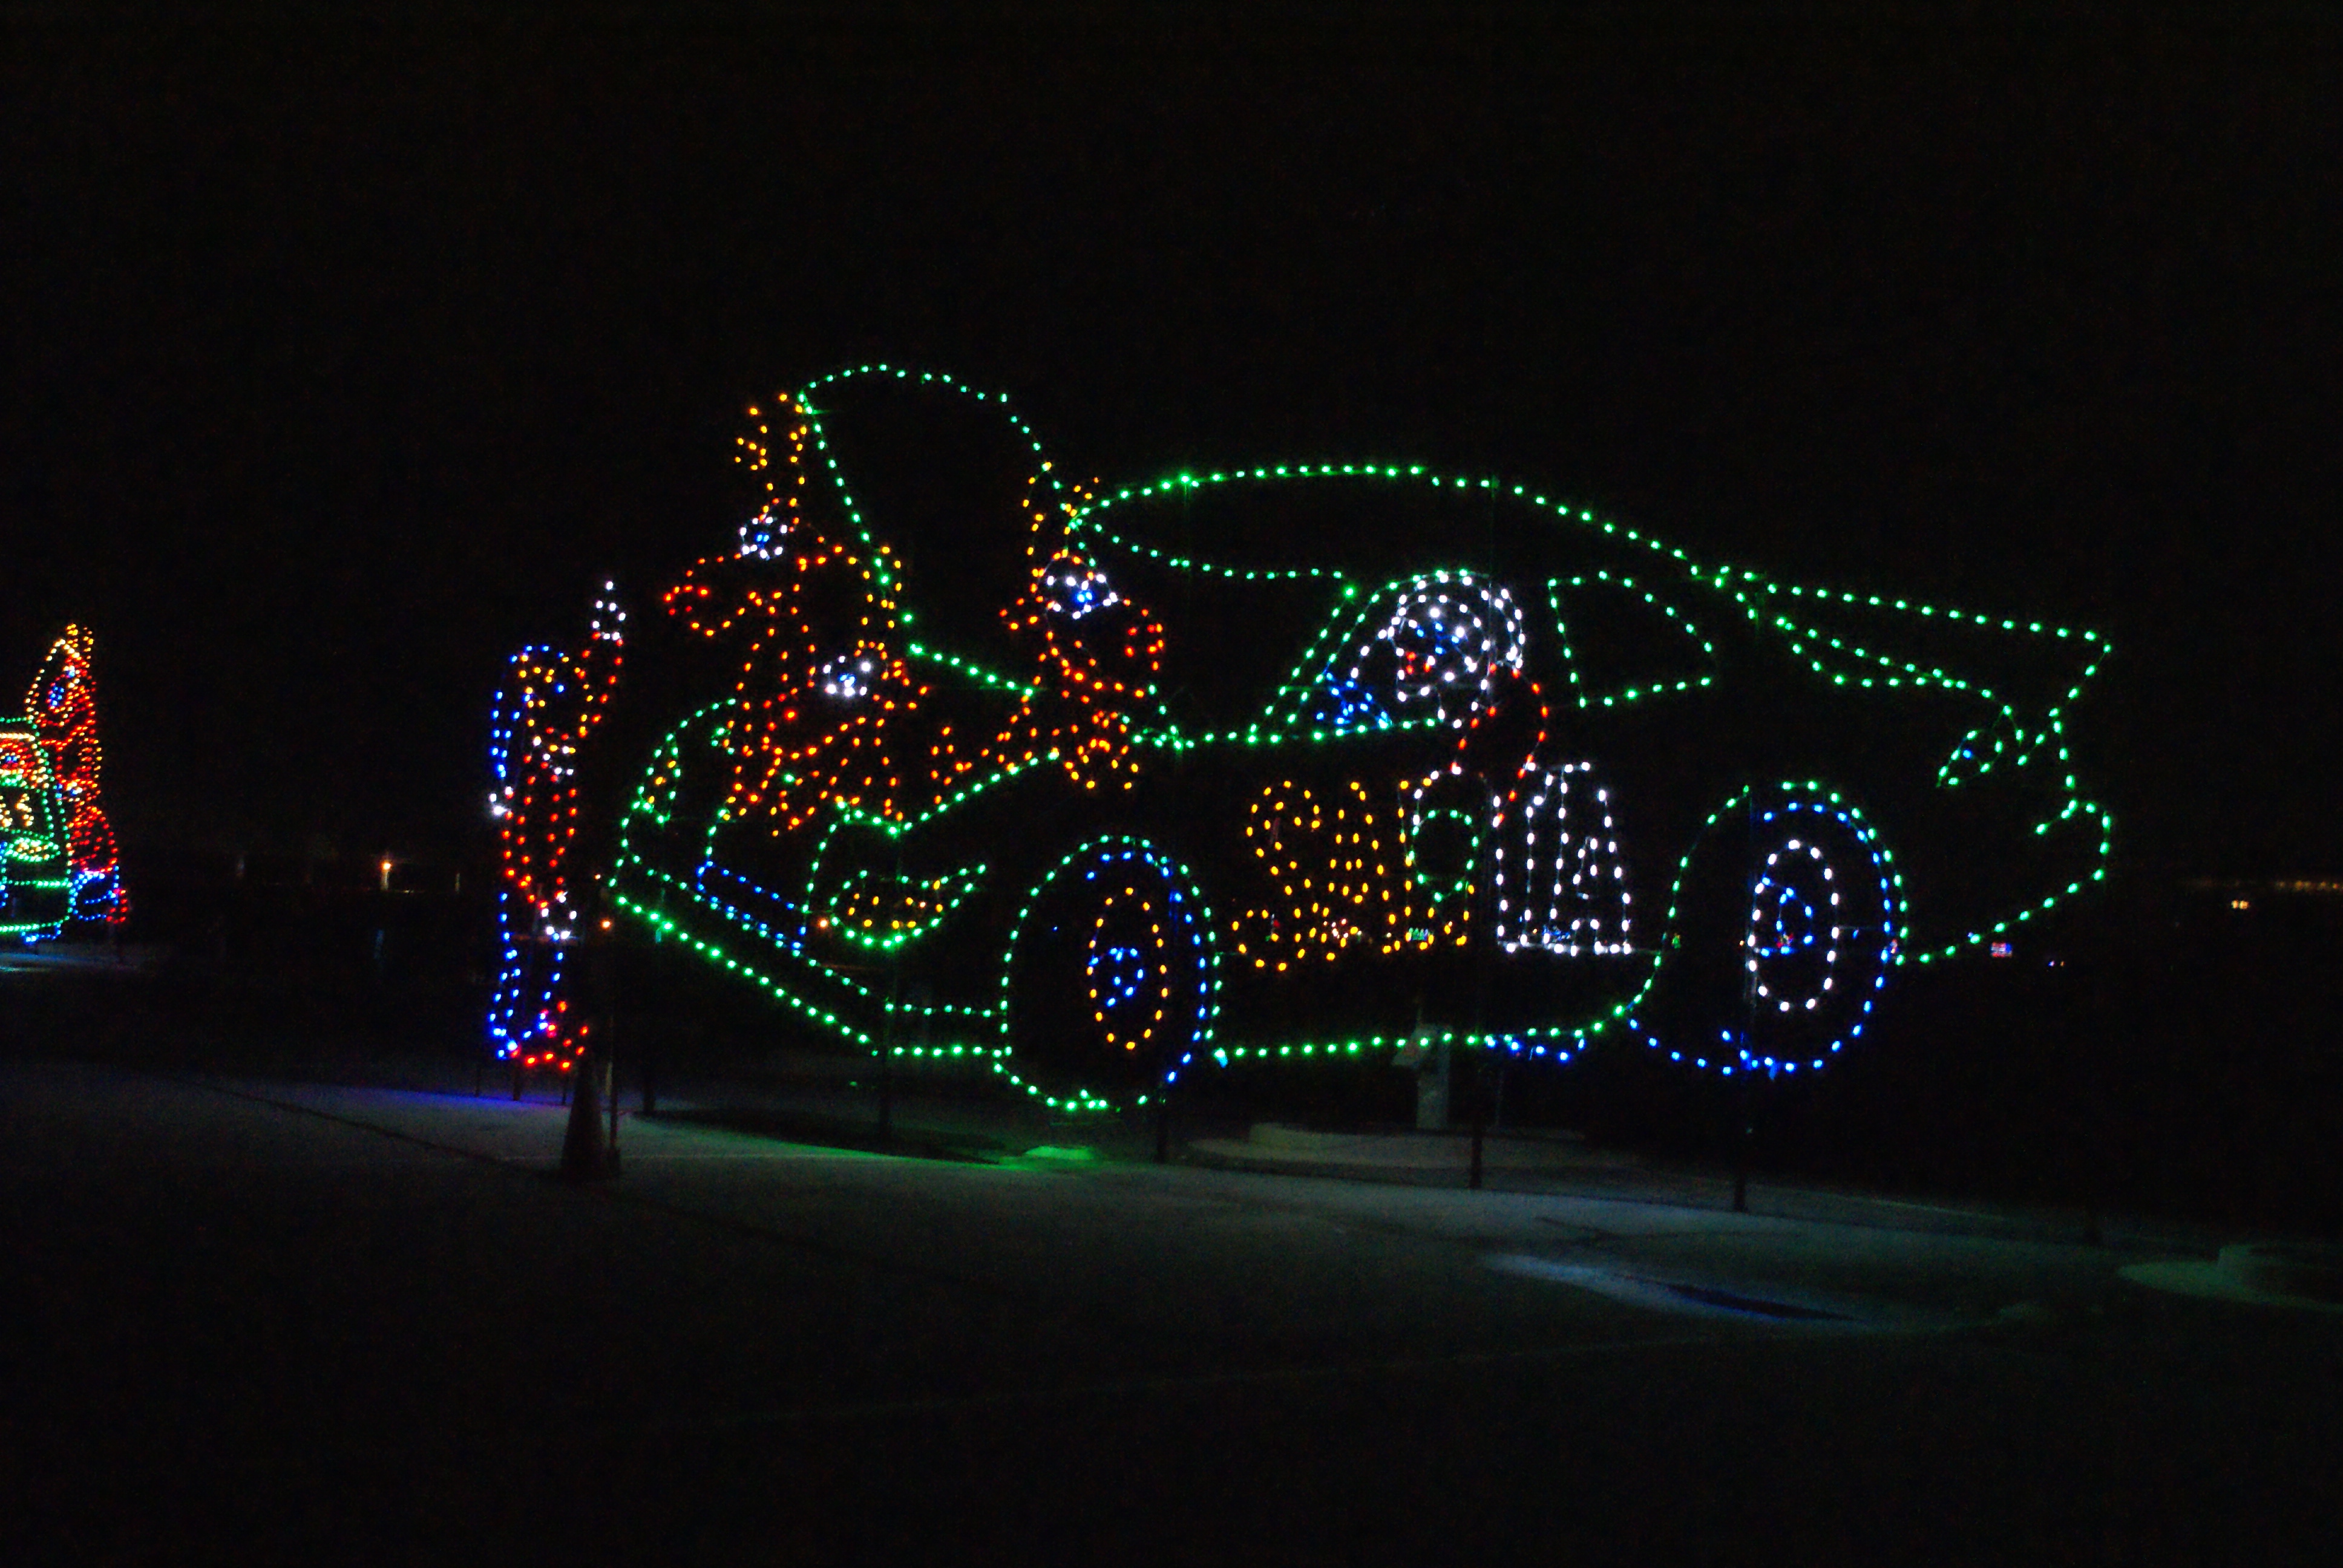 gift of lights illuminates holiday cheer at atlanta motor